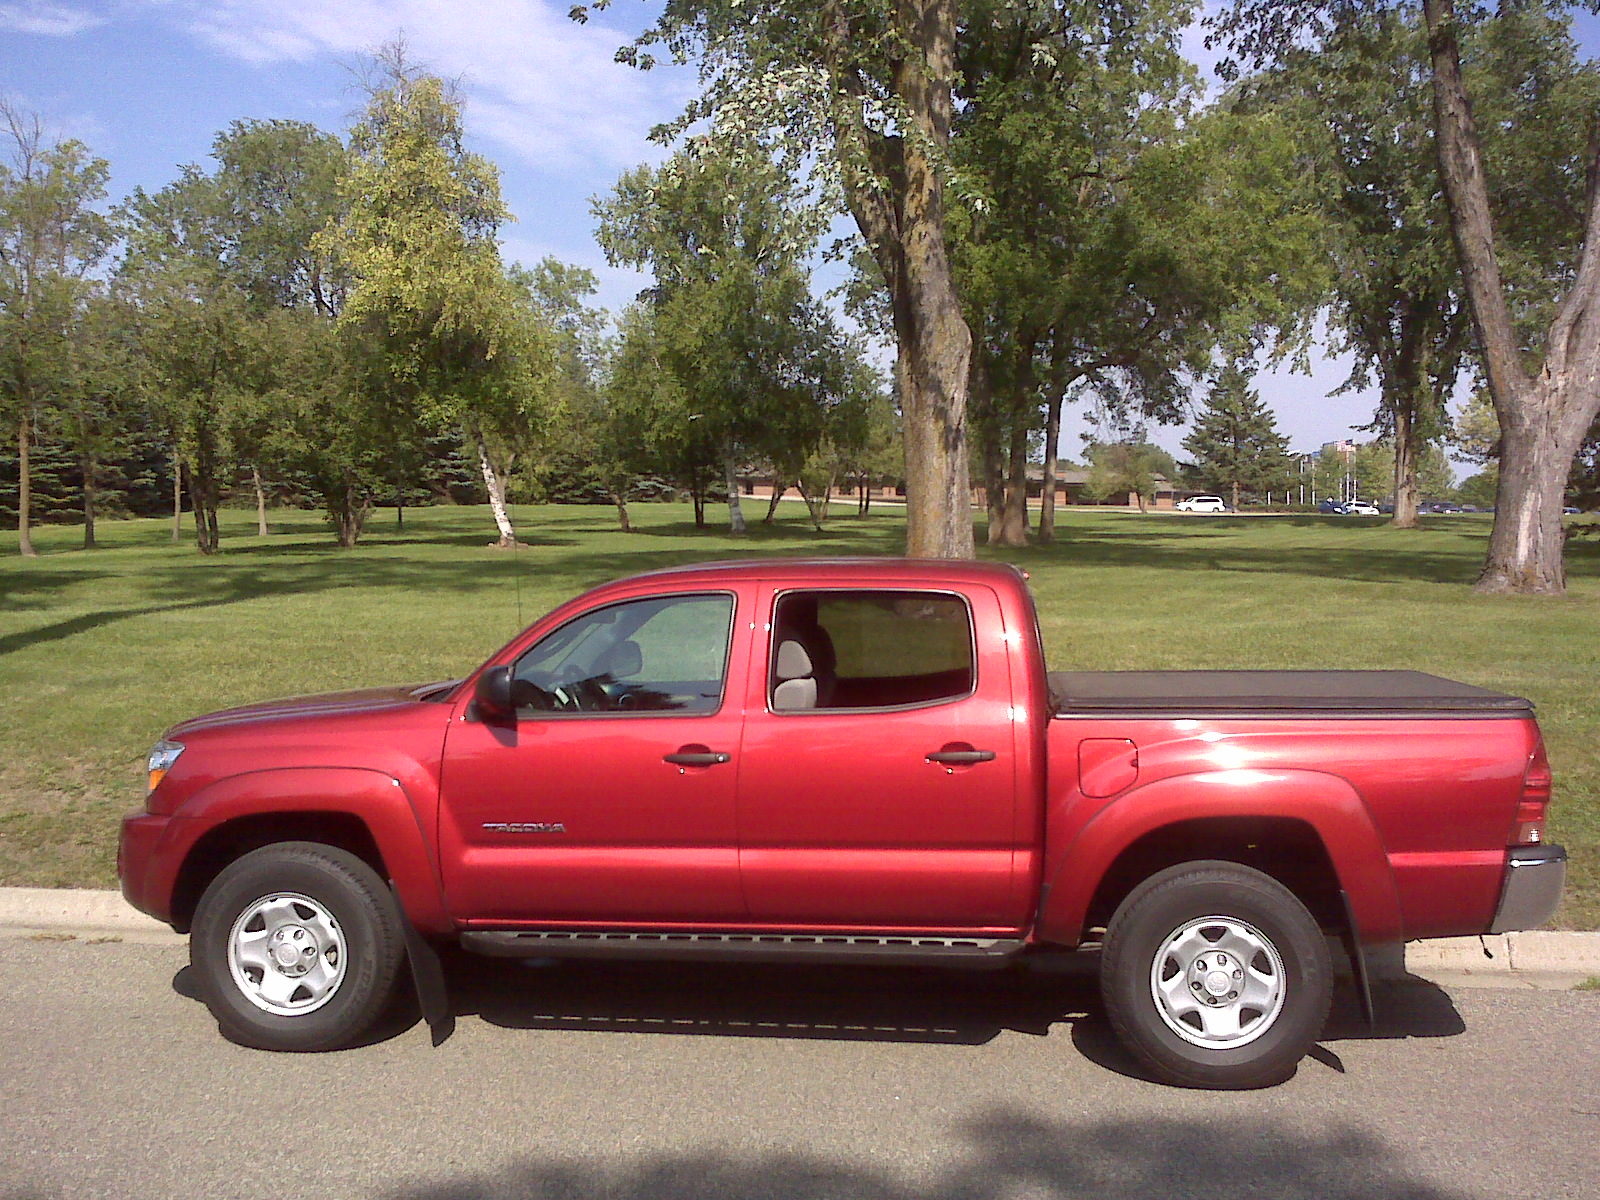 Photograph of a 2008 4-wheel-drive Toyota Tacoma pickup truck